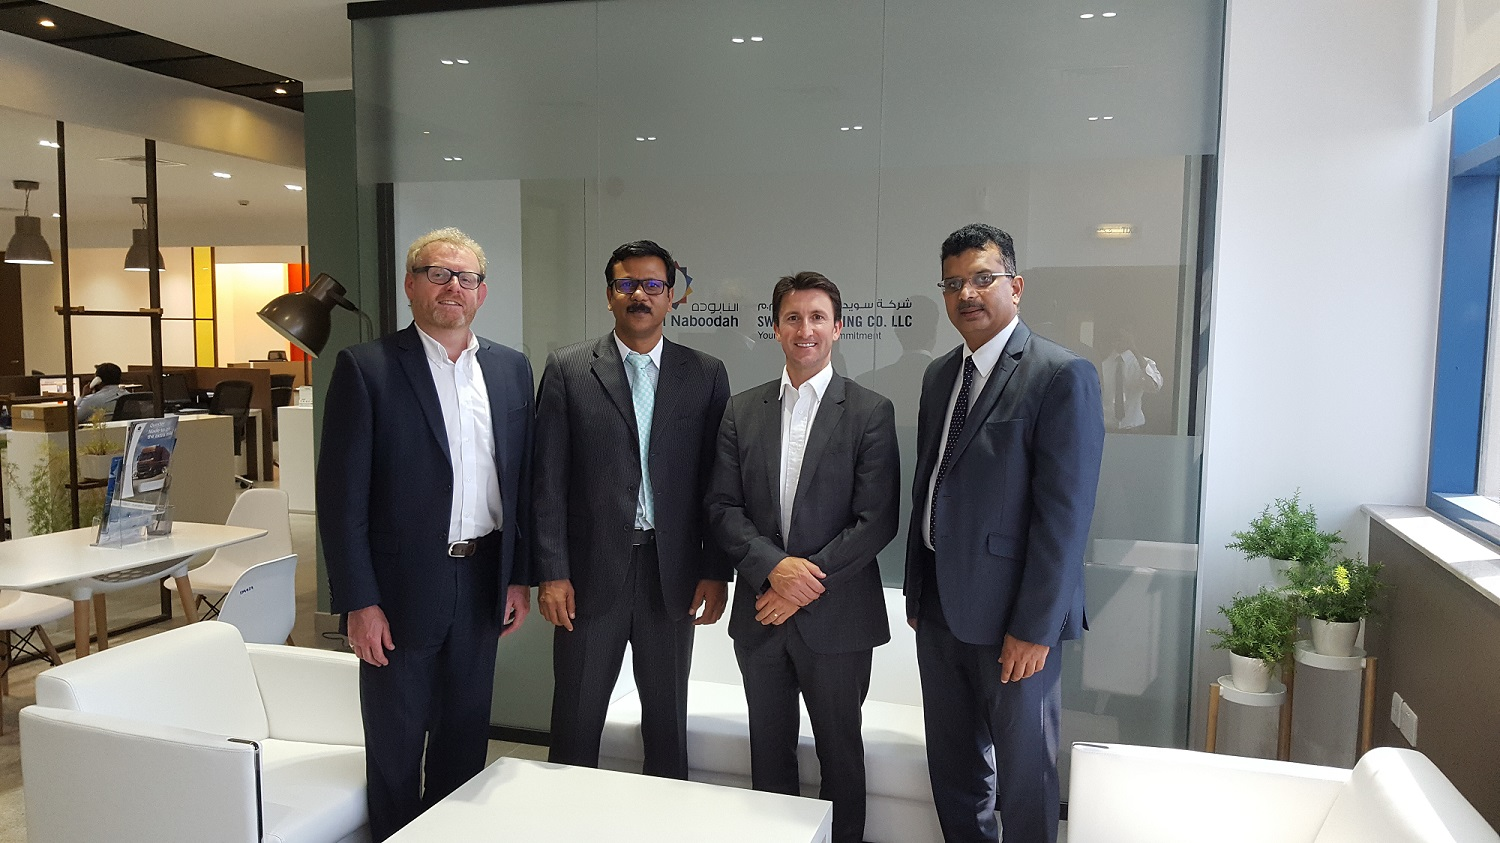 Lighting the way to business growth in Dubai